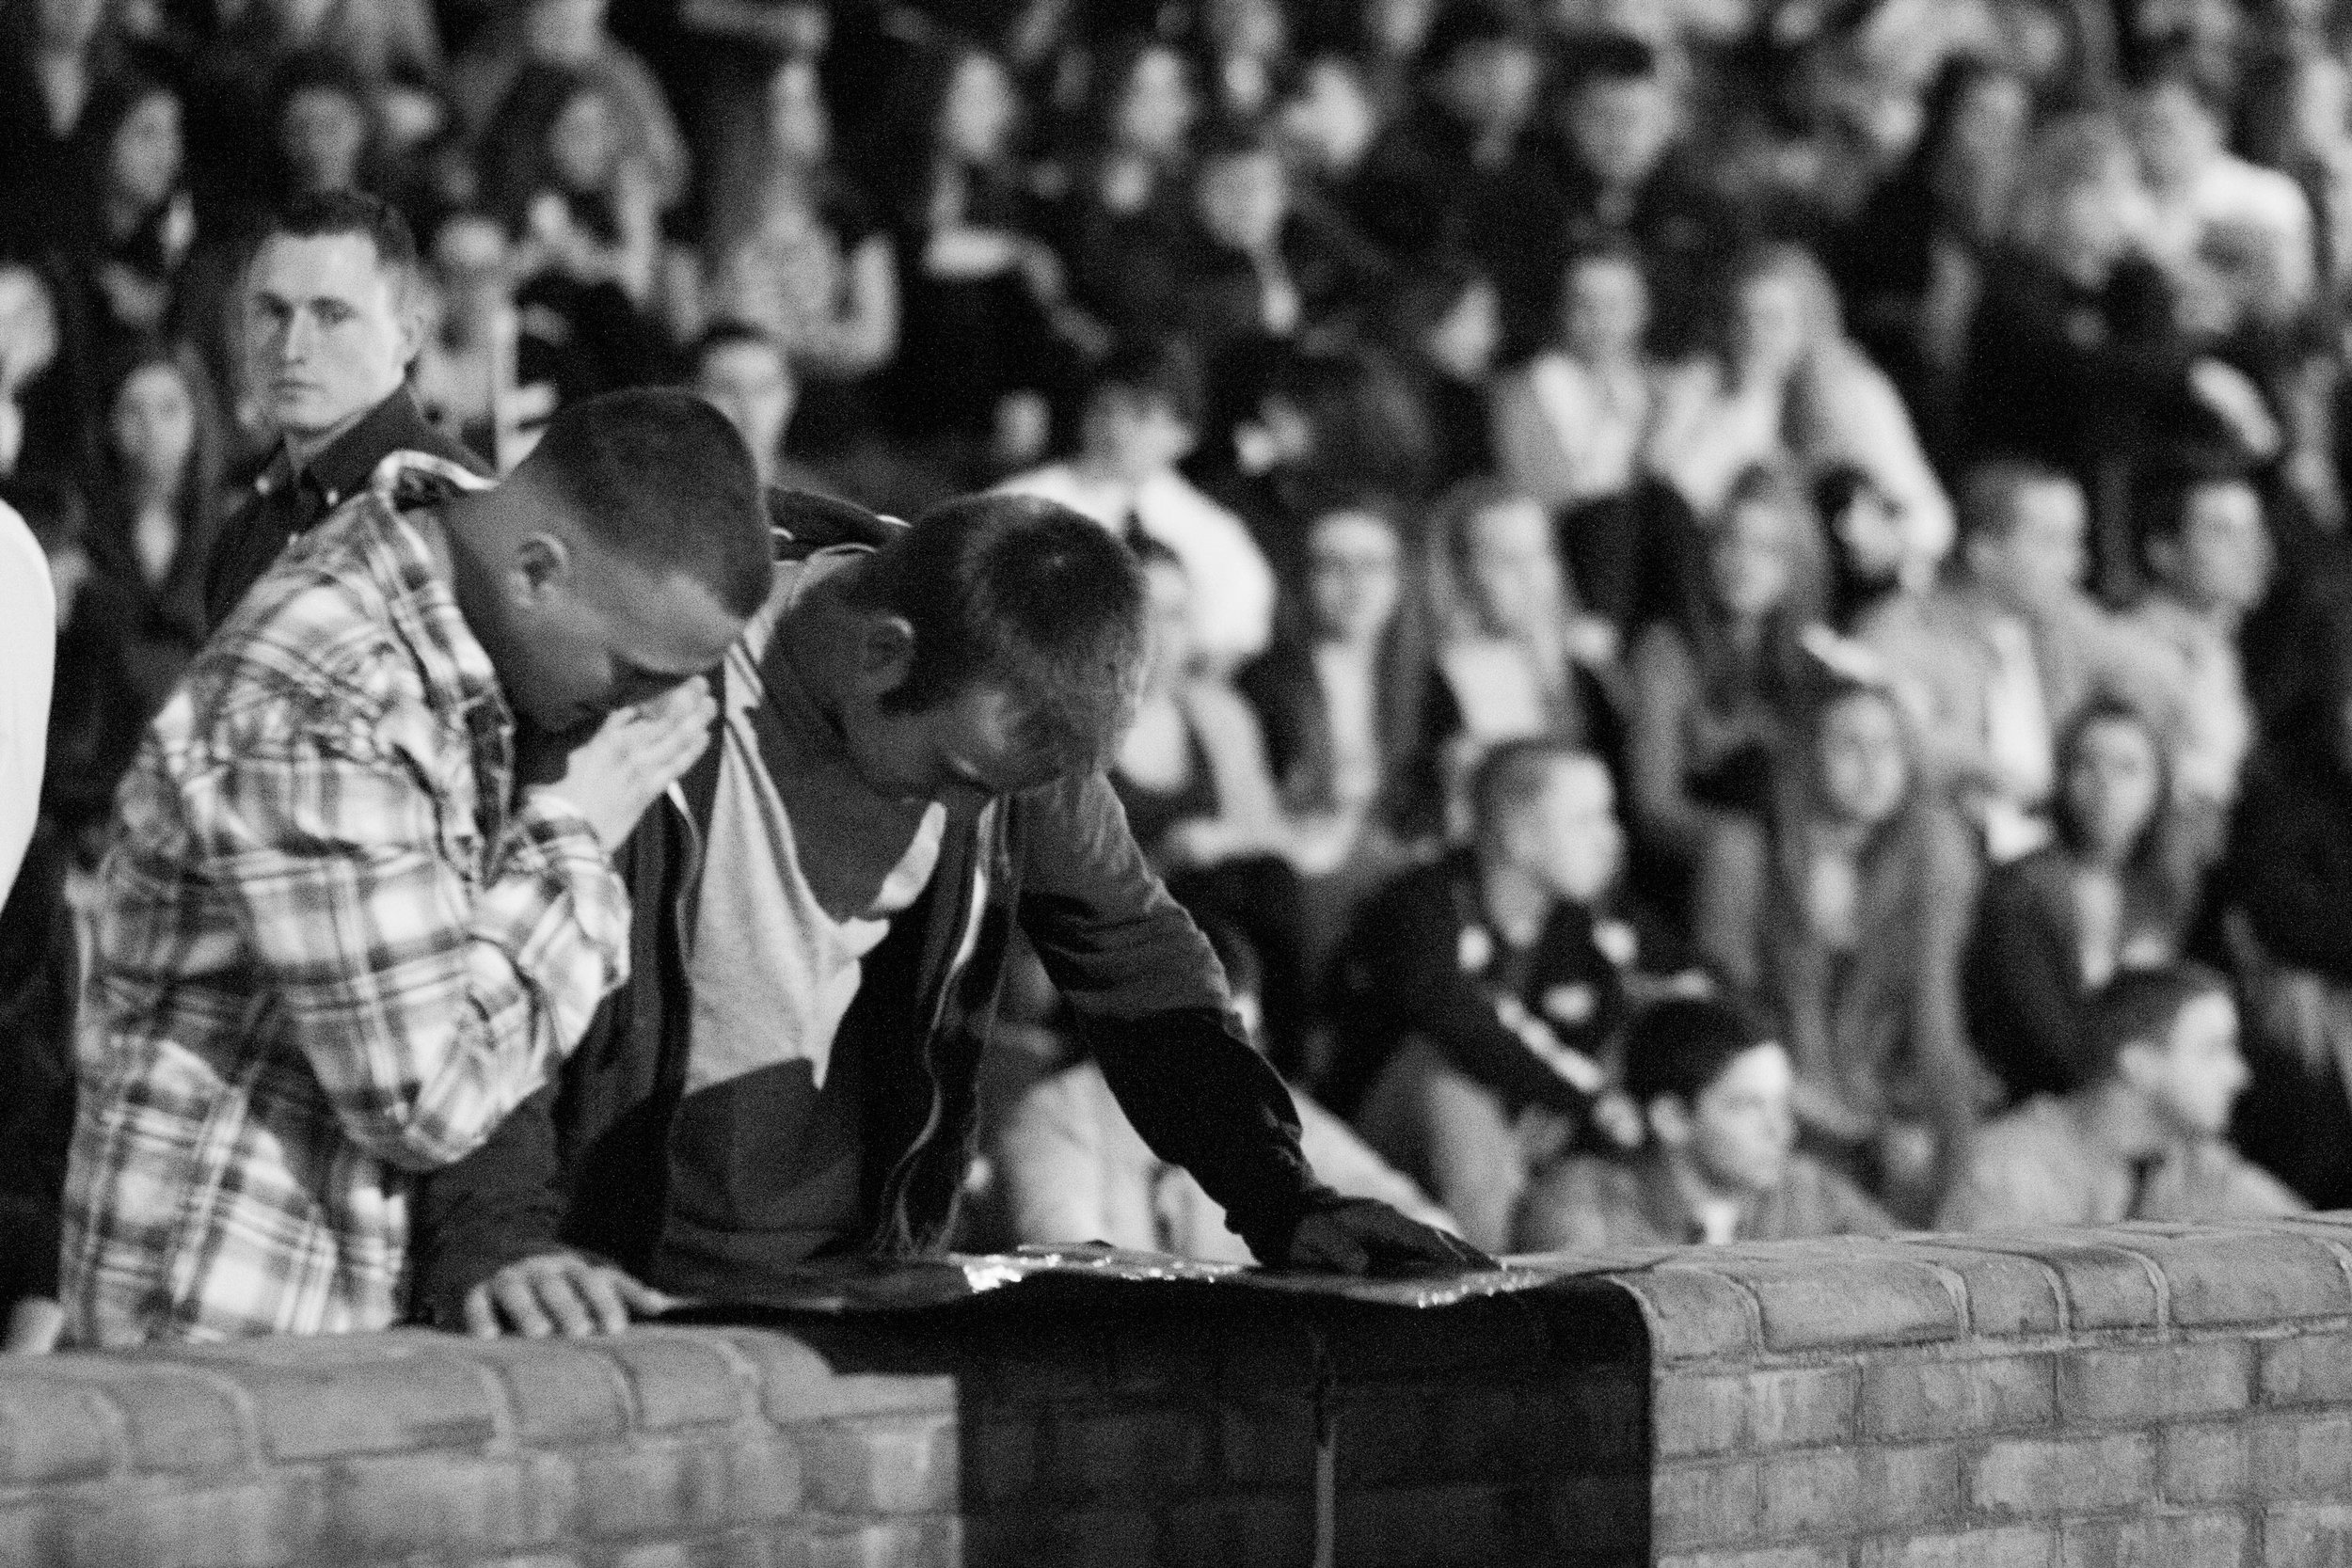 Friends and family of Timothy Coyer, a Towson University student who  died on March 31, 2012, comfort each other during a candlelight vigil  held on campus in Baltimore, Md.